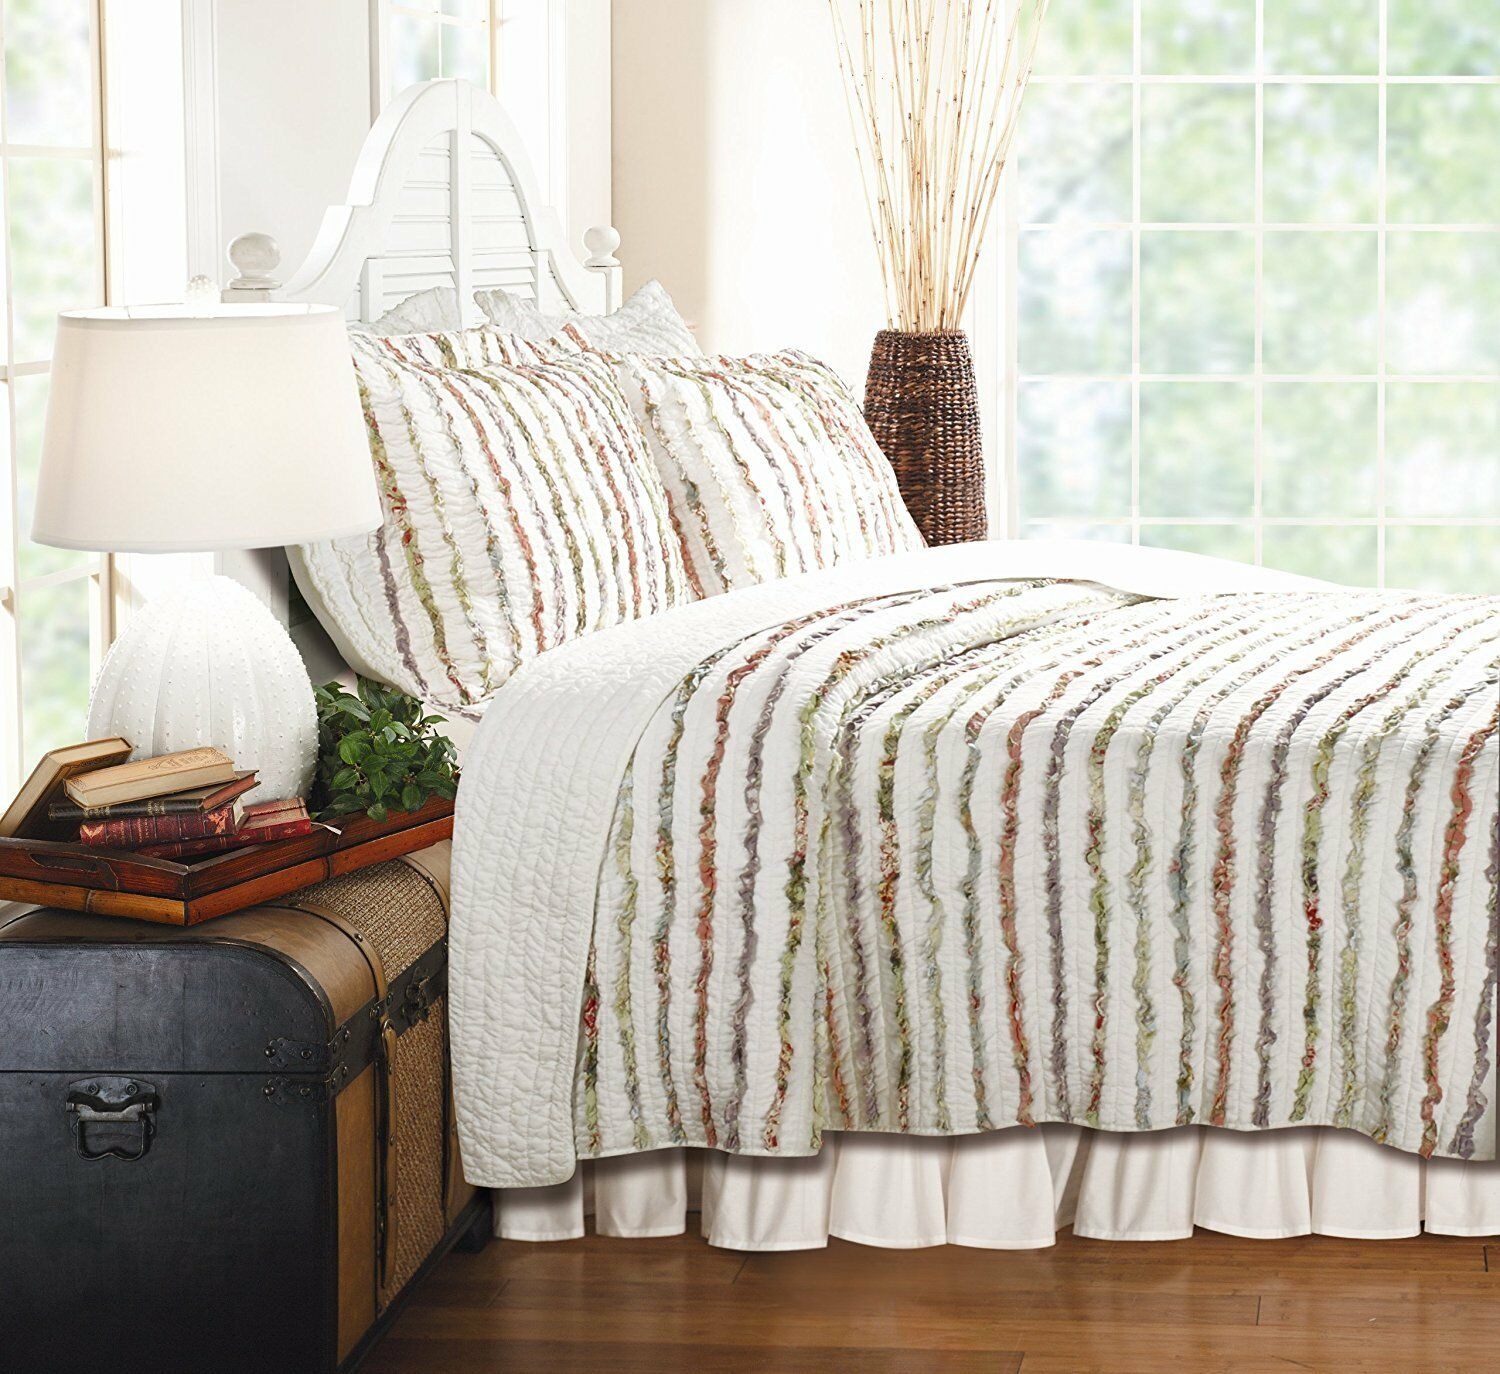 Queen Dimensione Bedding Quilt Set Bella Ruffle Bed 100% Cotton OverDimensioned Floral New